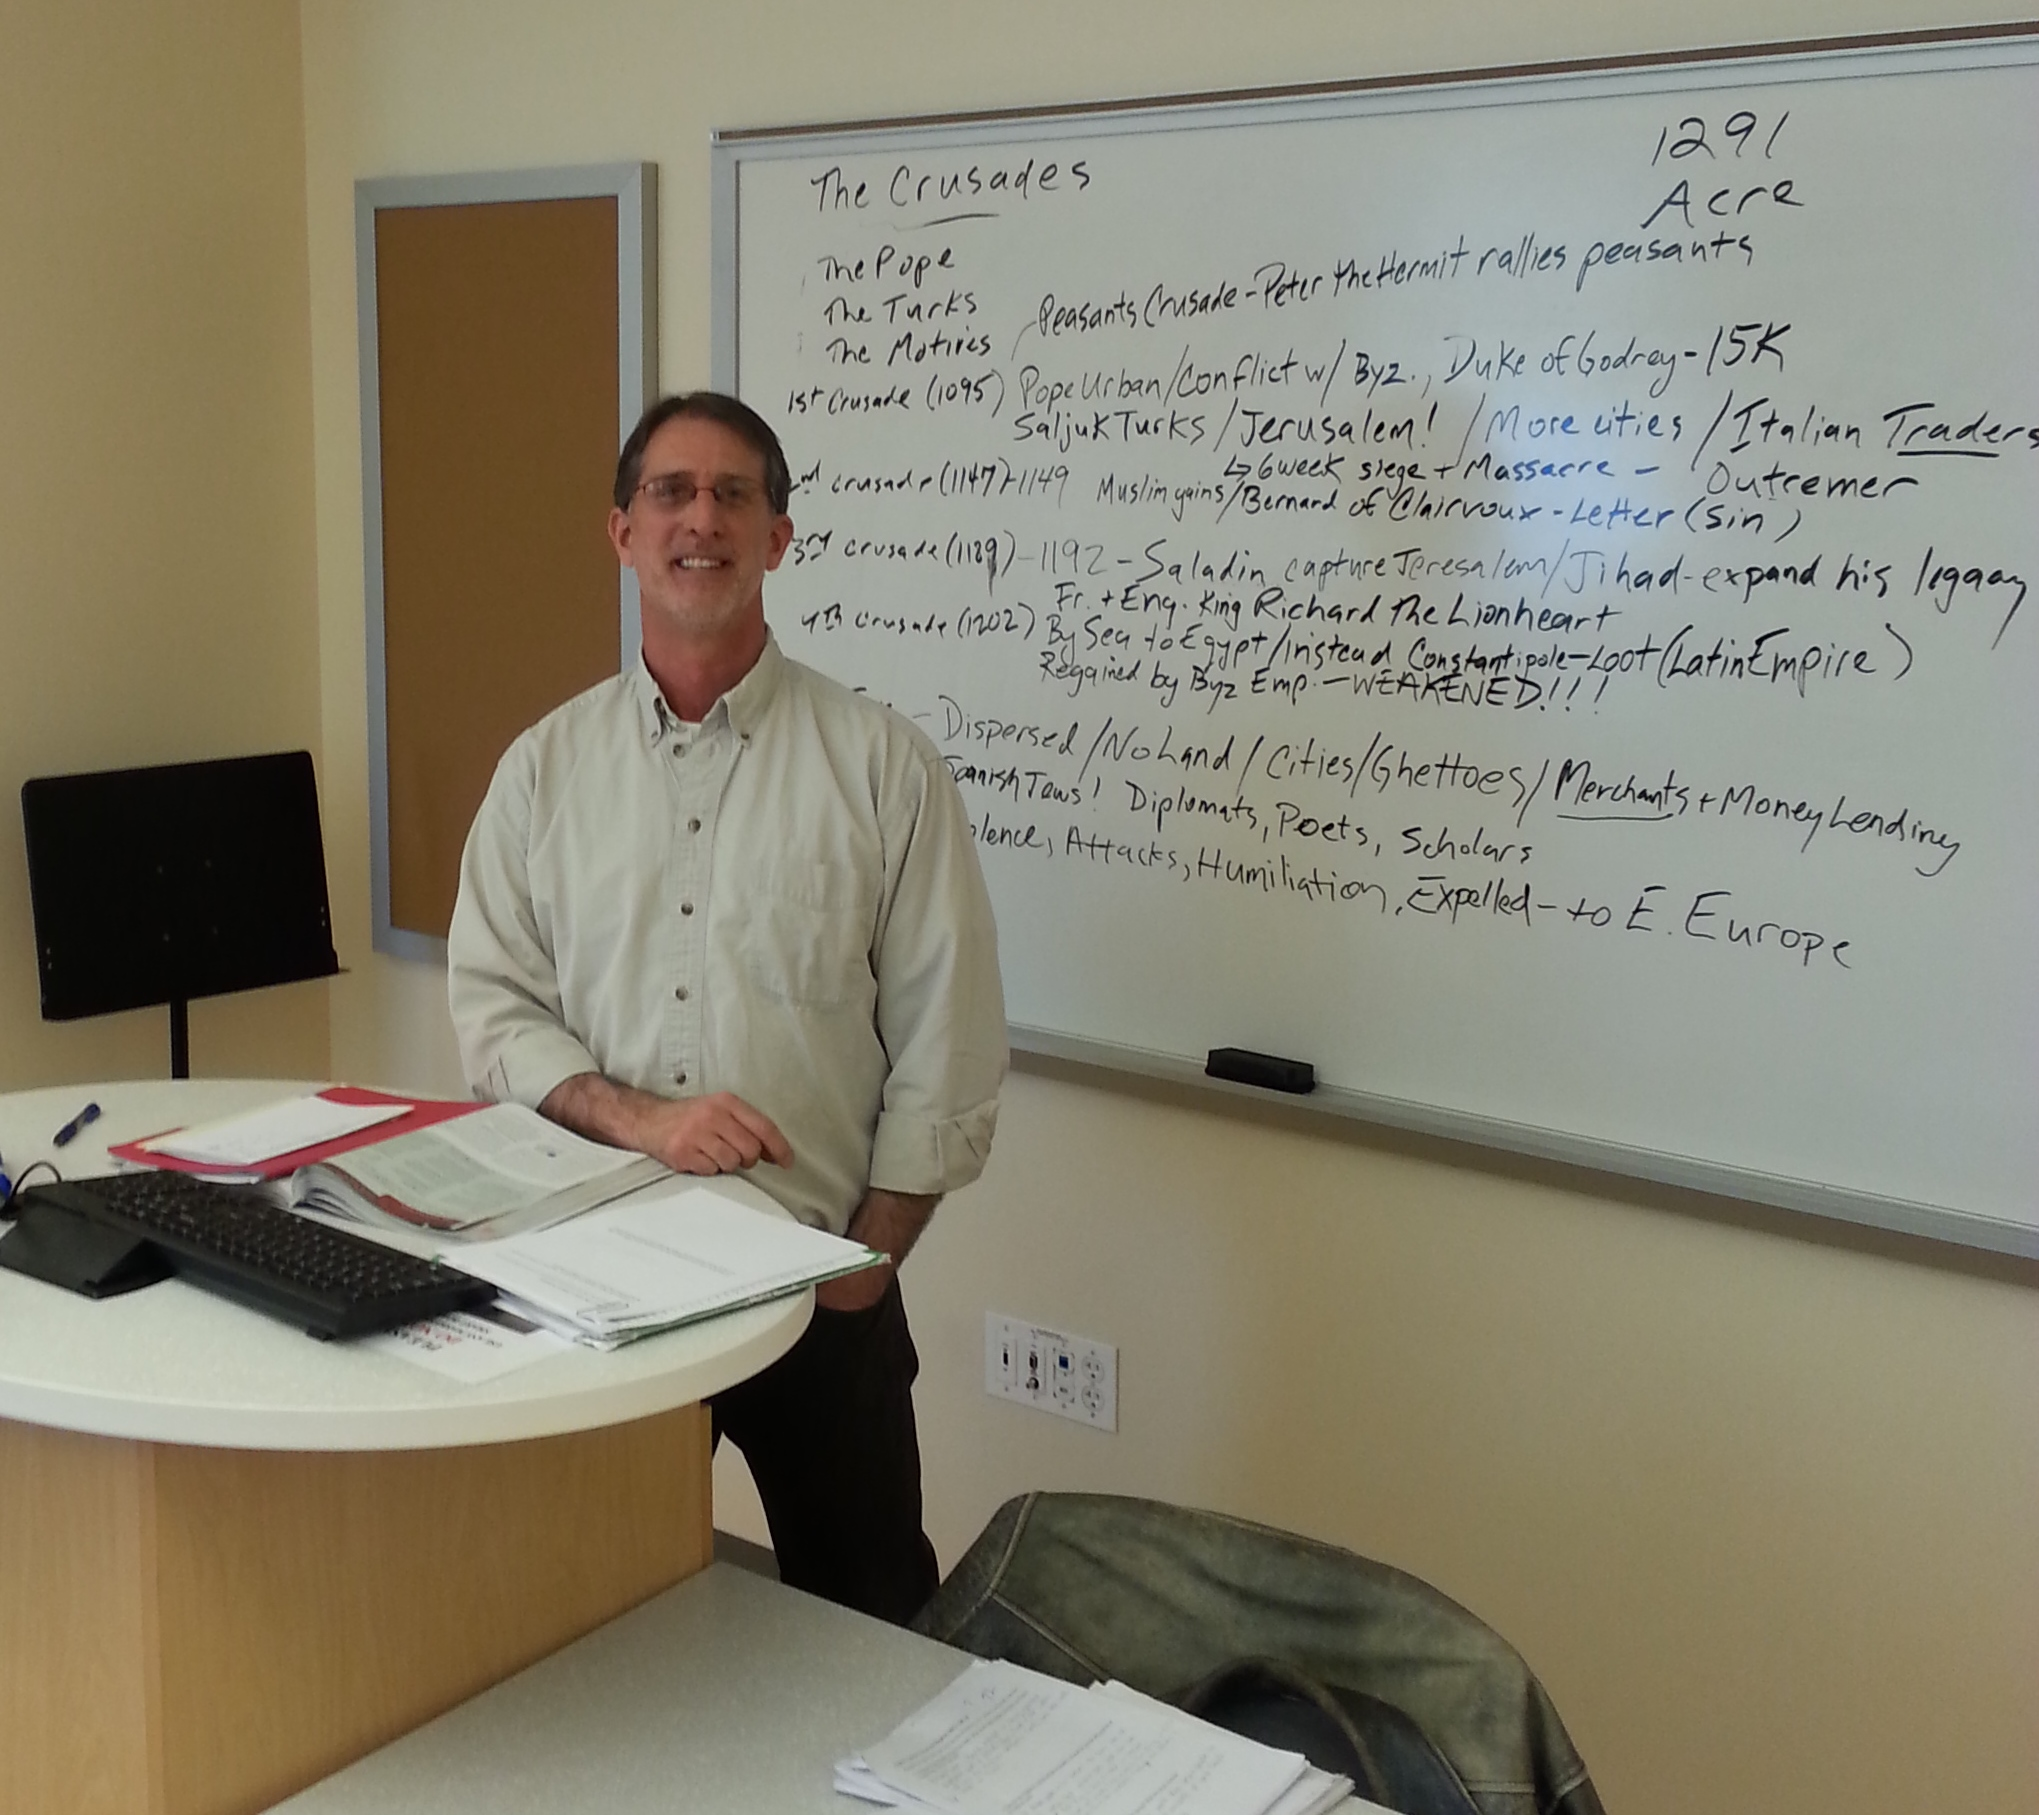 Gene Smith standing in front of a white board with notes on the crusades.